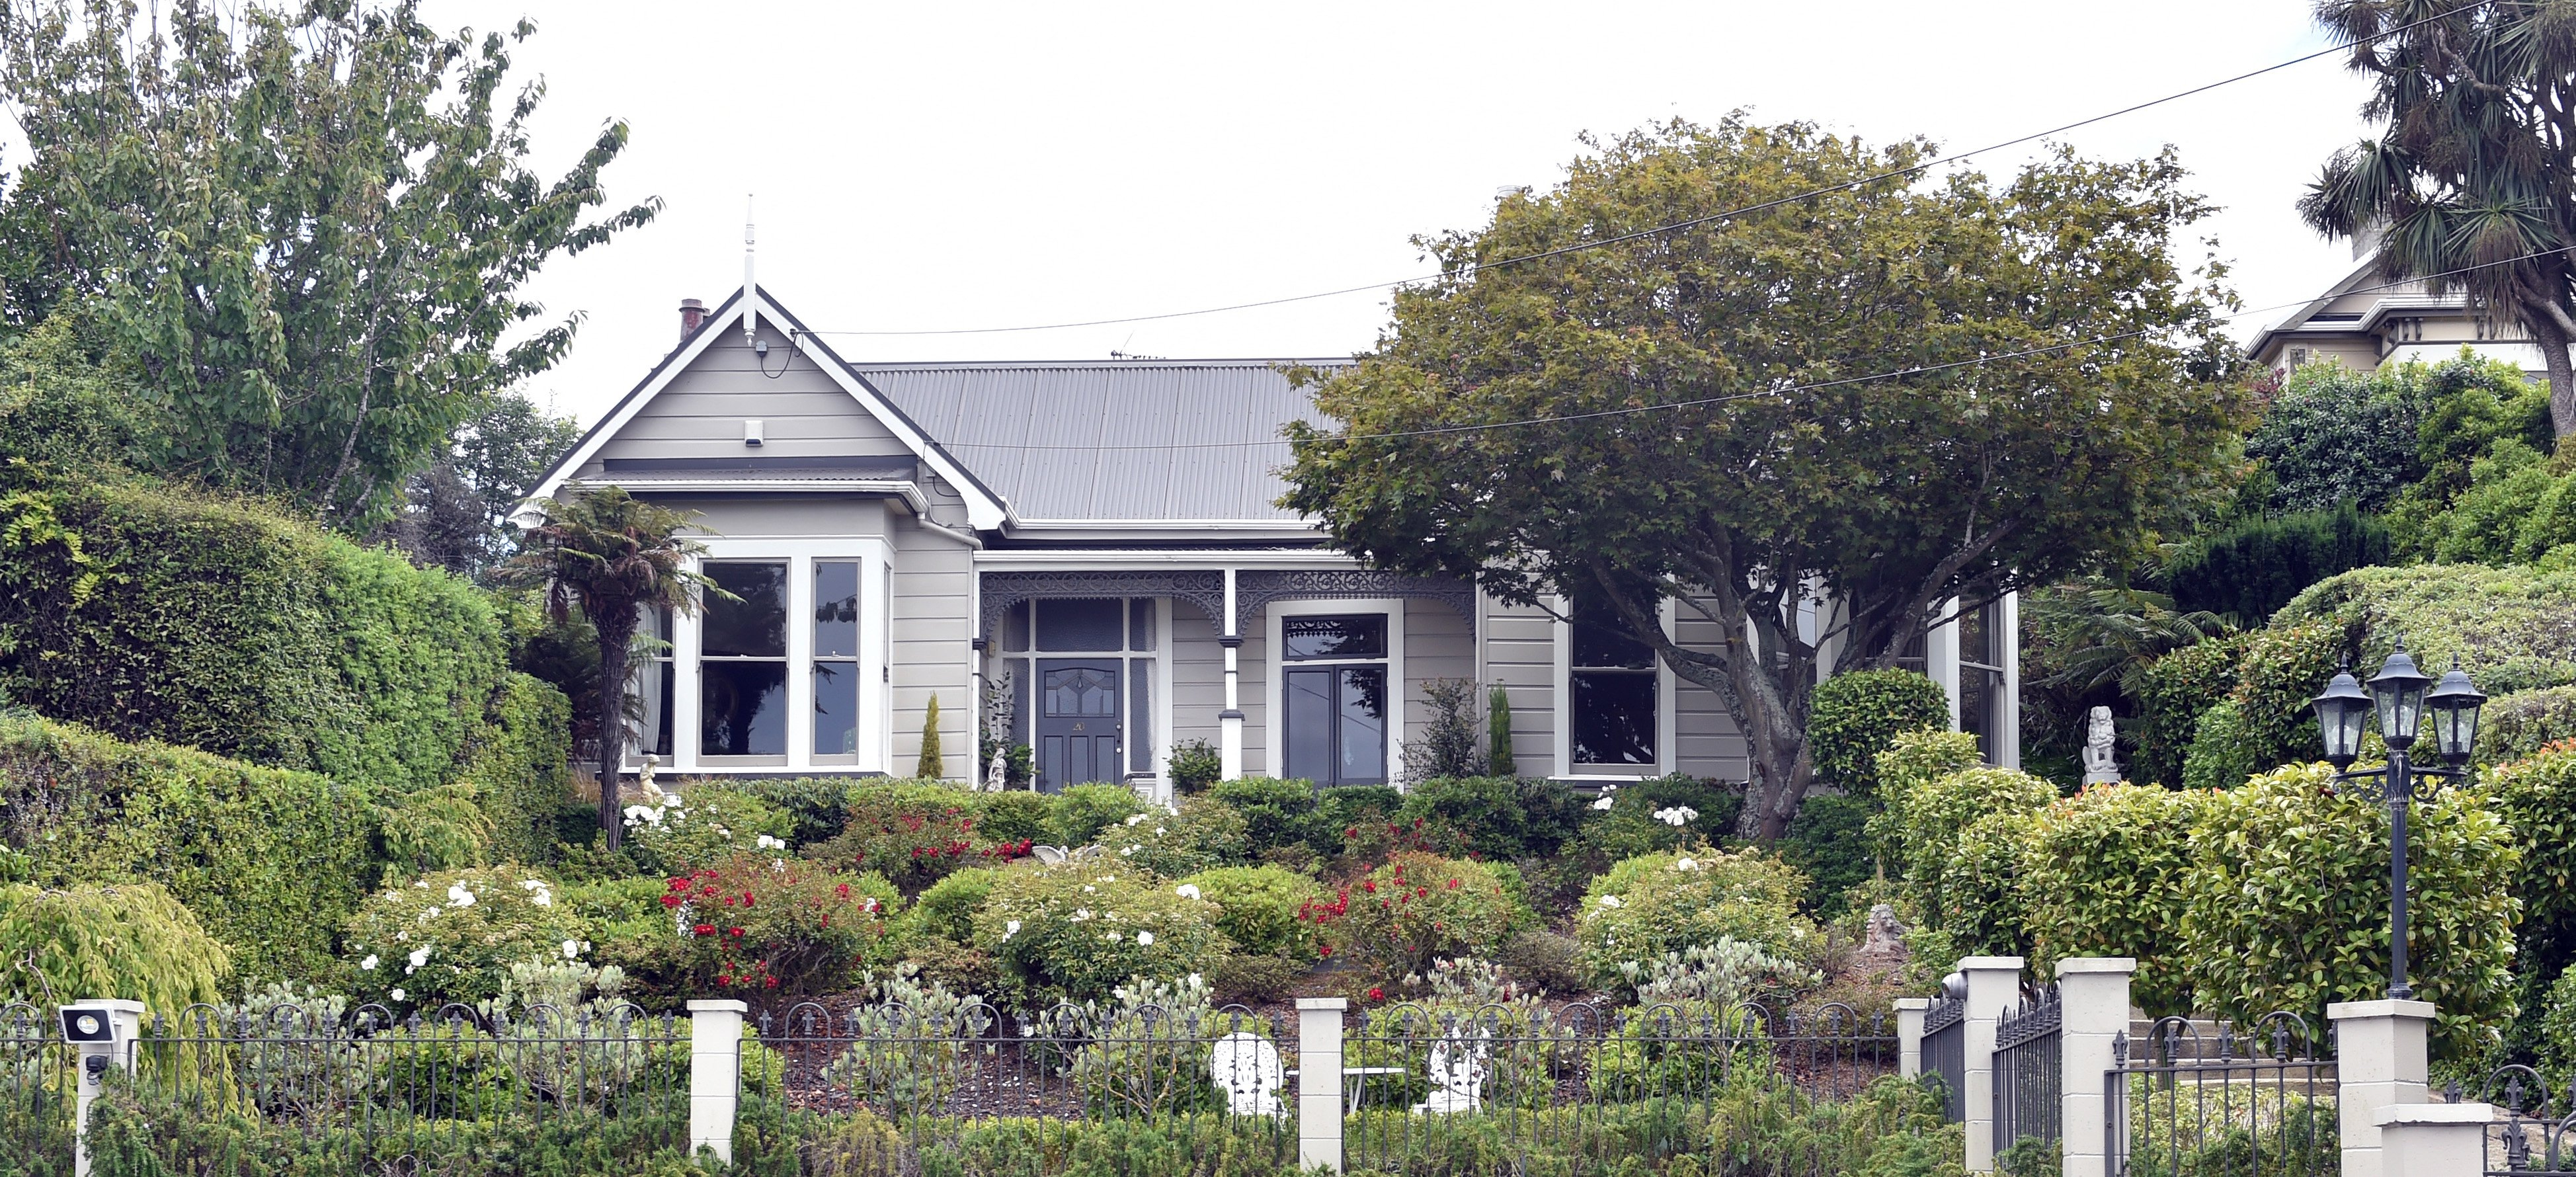 Built in the 1890s, this elevated Dunedin home offers city and sea views from its front veranda....